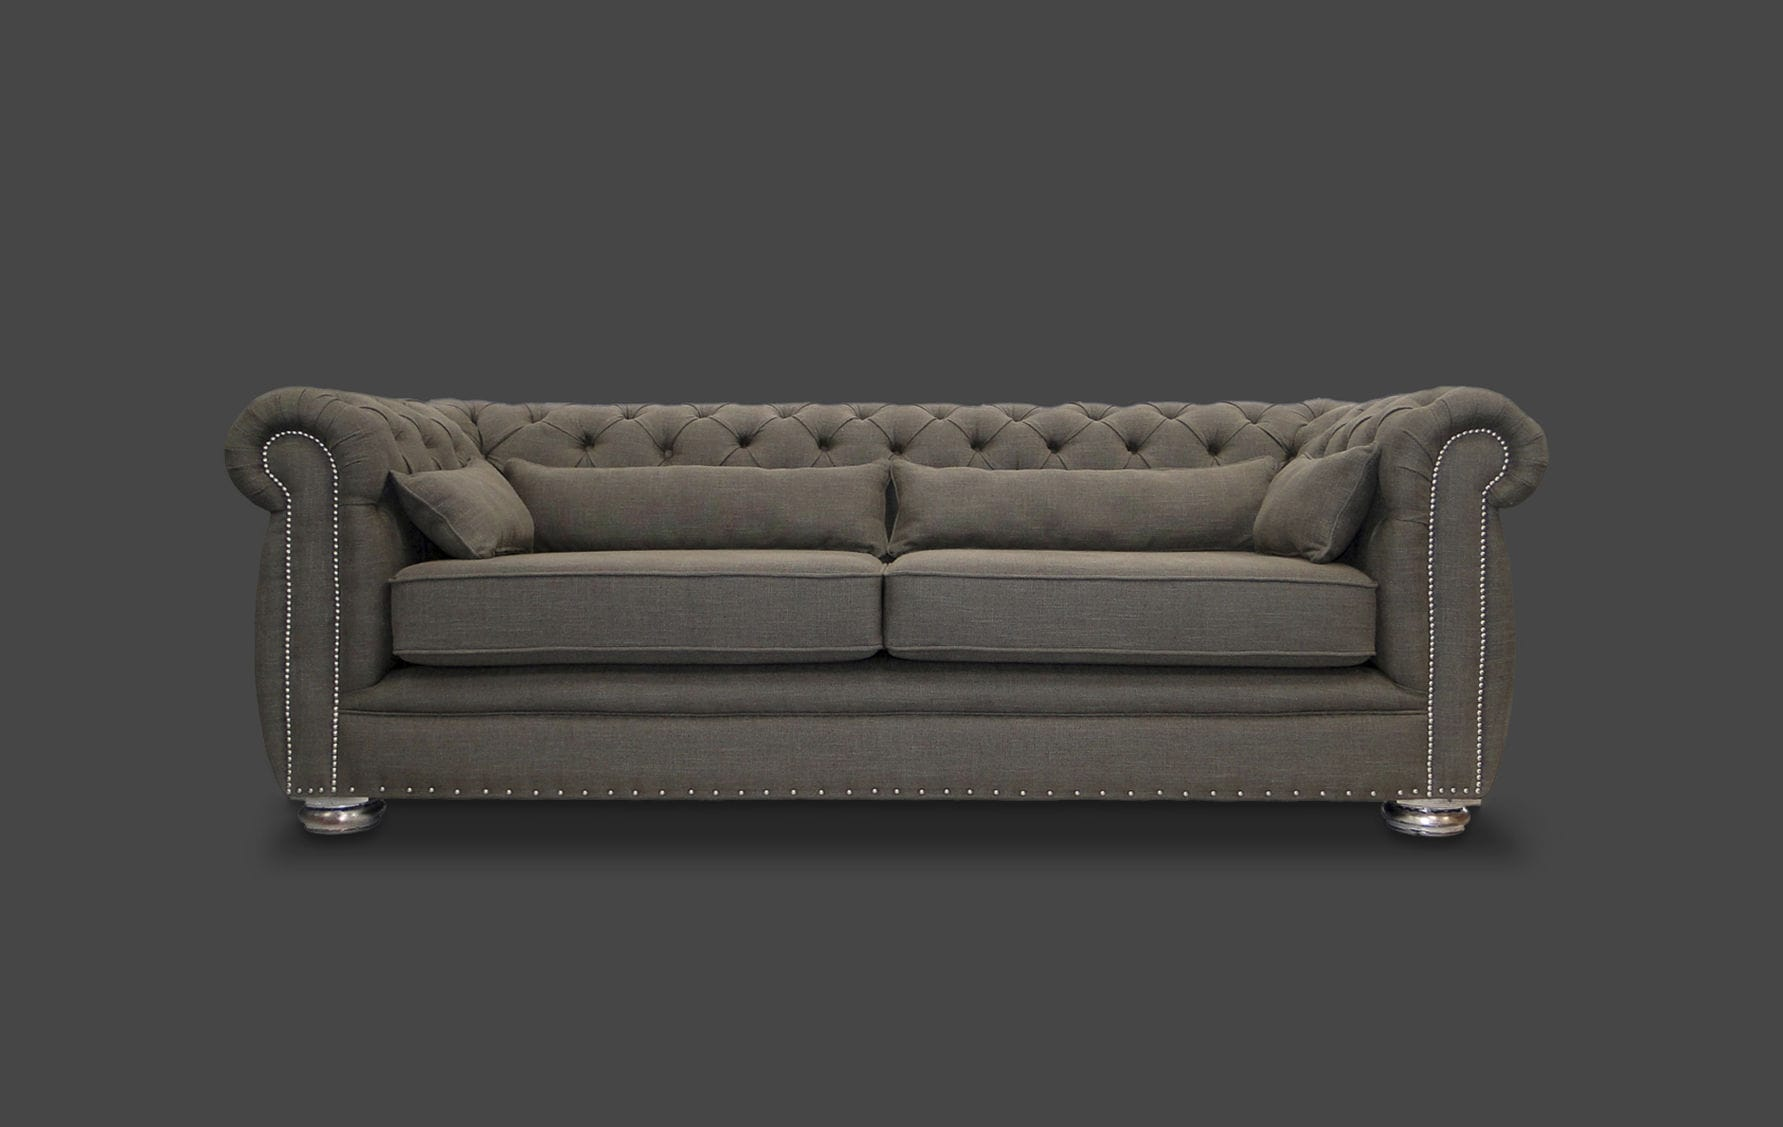 Chesterfield ecksofa stoff grau  Chesterfield-Sofa / Stoff / 2 Plätze / braun - GEORGE - HB Group